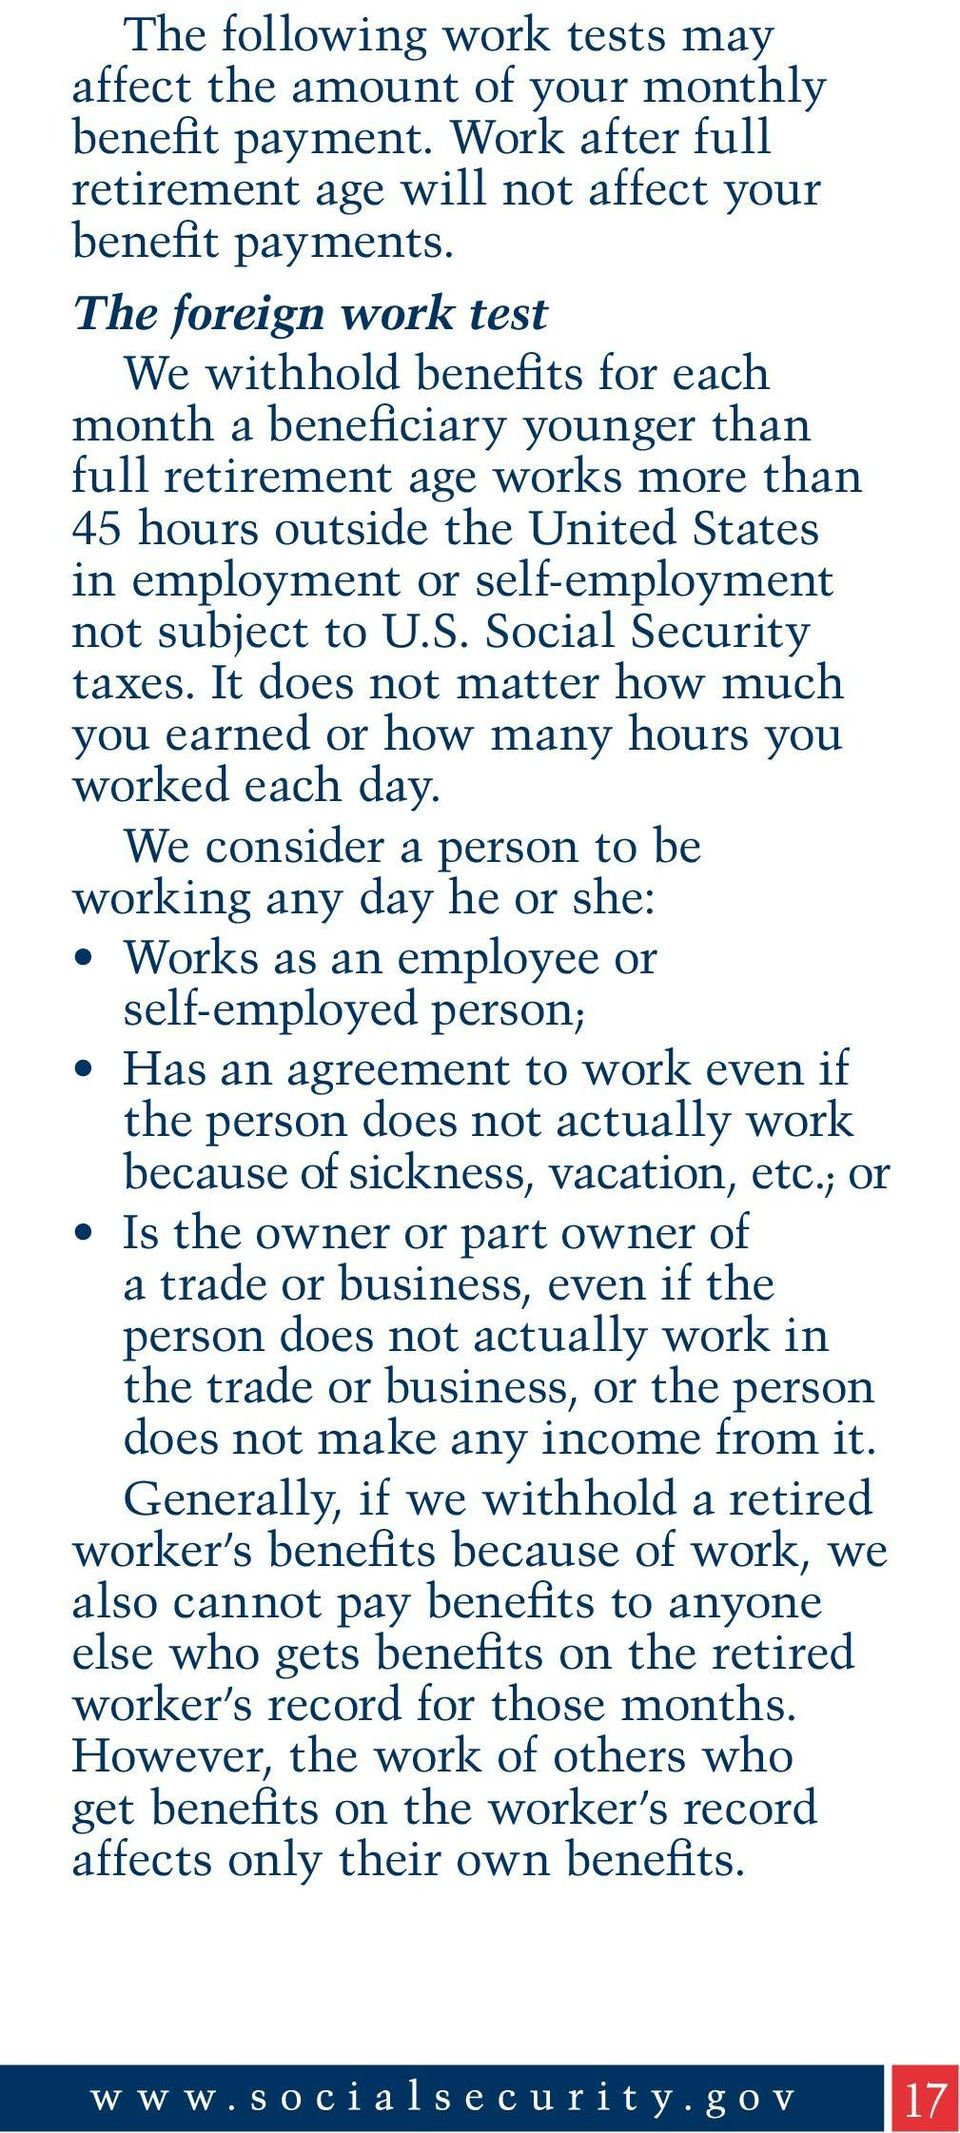 subject to U.S. Social Security taxes. It does not matter how much you earned or how many hours you worked each day.